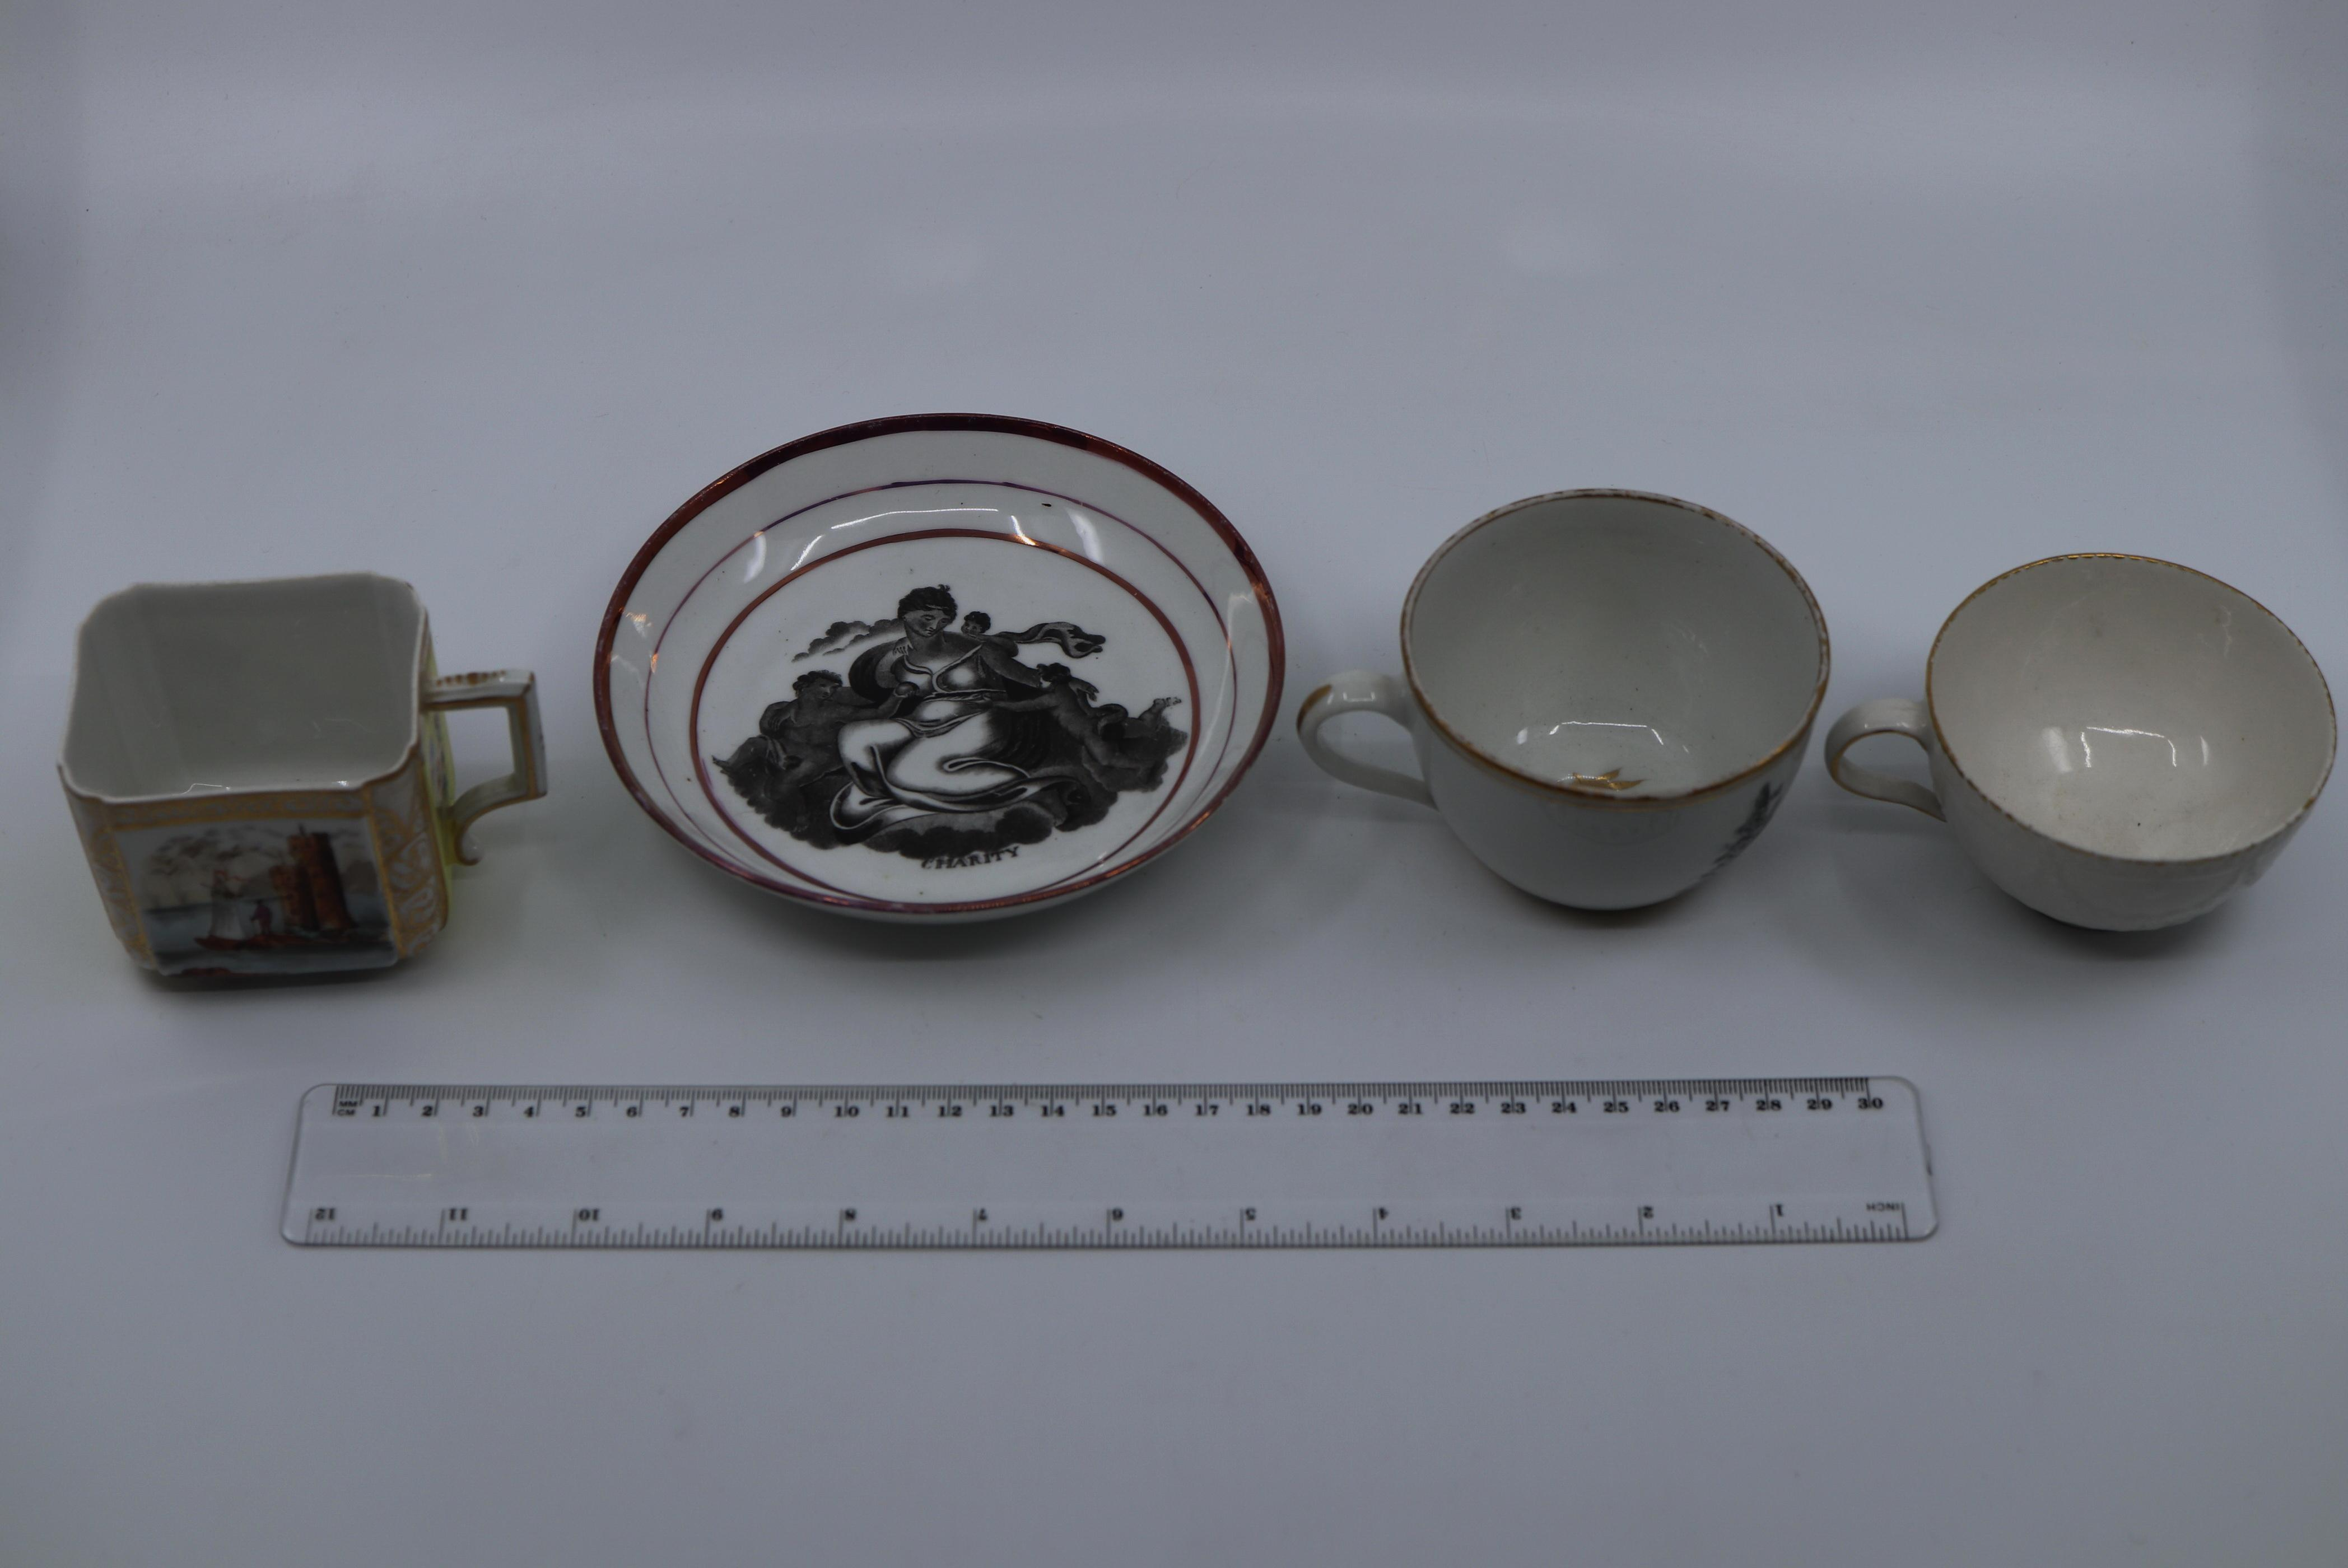 4 X EARLY 19TH CENTURY ENGLISH PORCELAIN ITEMS INCLUDING CHARITY SAUCER, WHITE RELIEF CUP WITH GOLD RIM, 2 HAND PAINTED PERIOD TEA CUPS